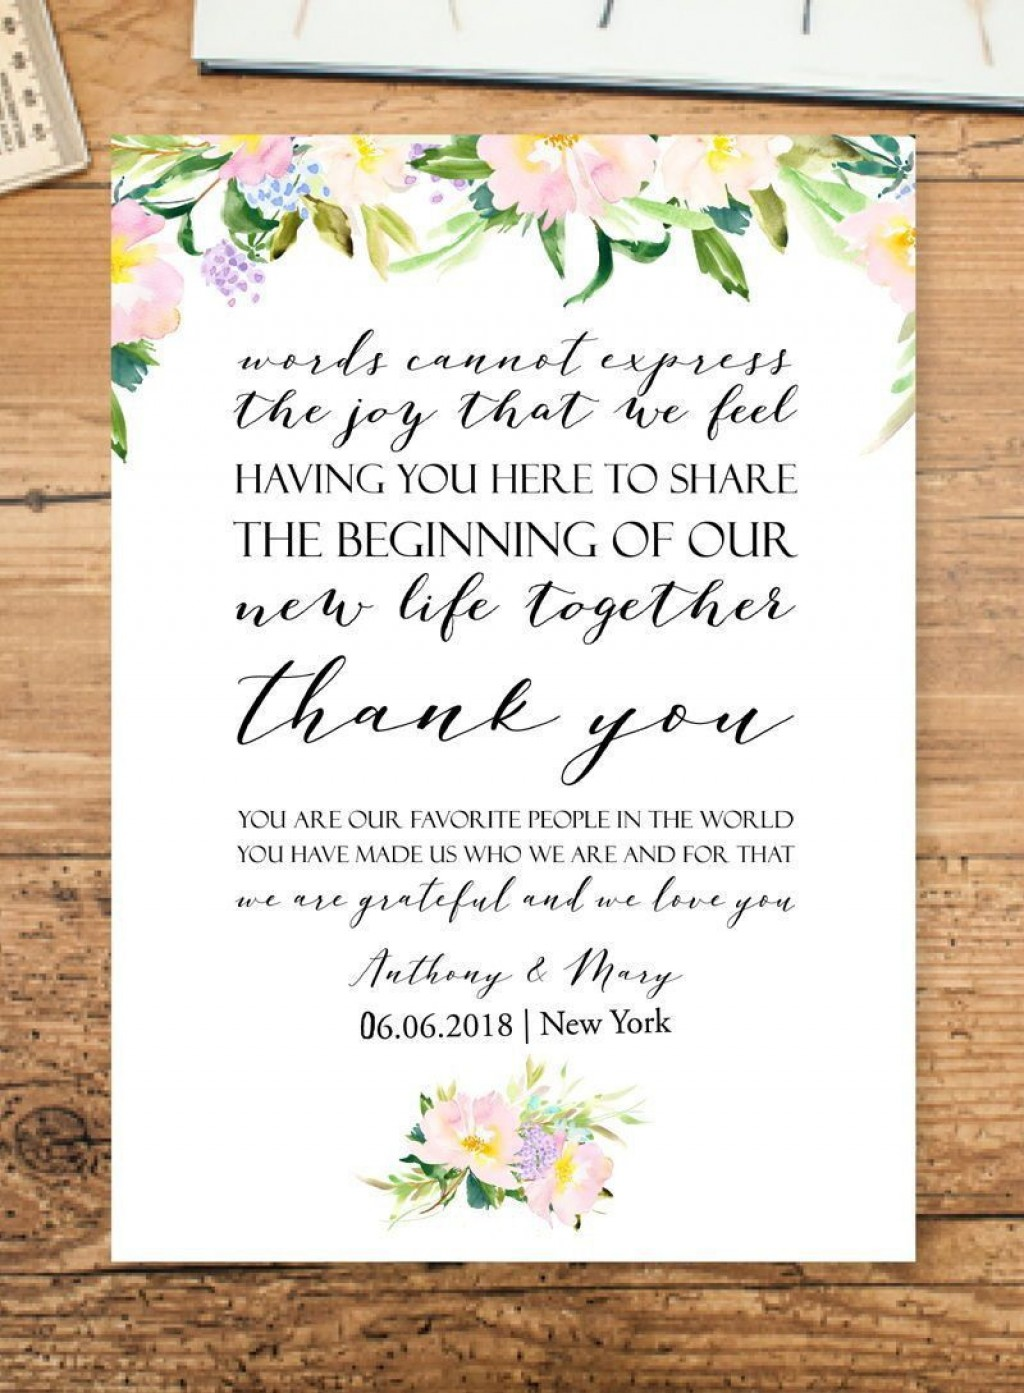 004 Striking Wedding Welcome Letter Template Word Concept Large